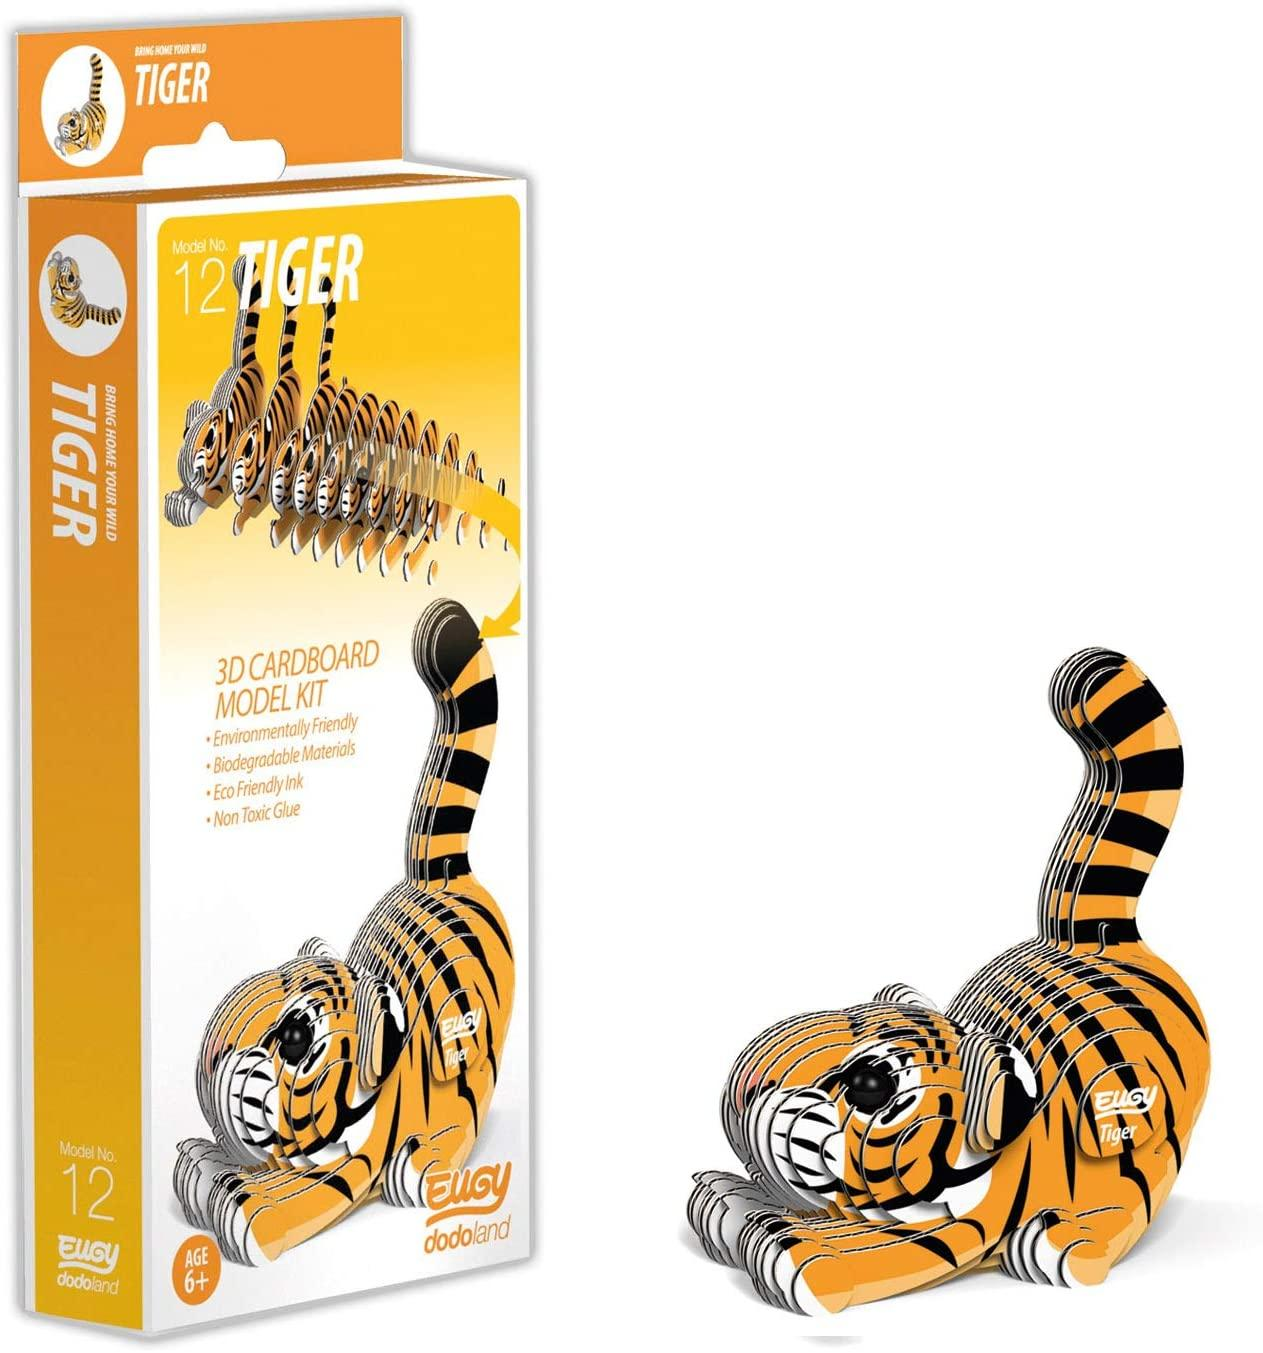 Box of Eugy Tiger with 3d model beside it.